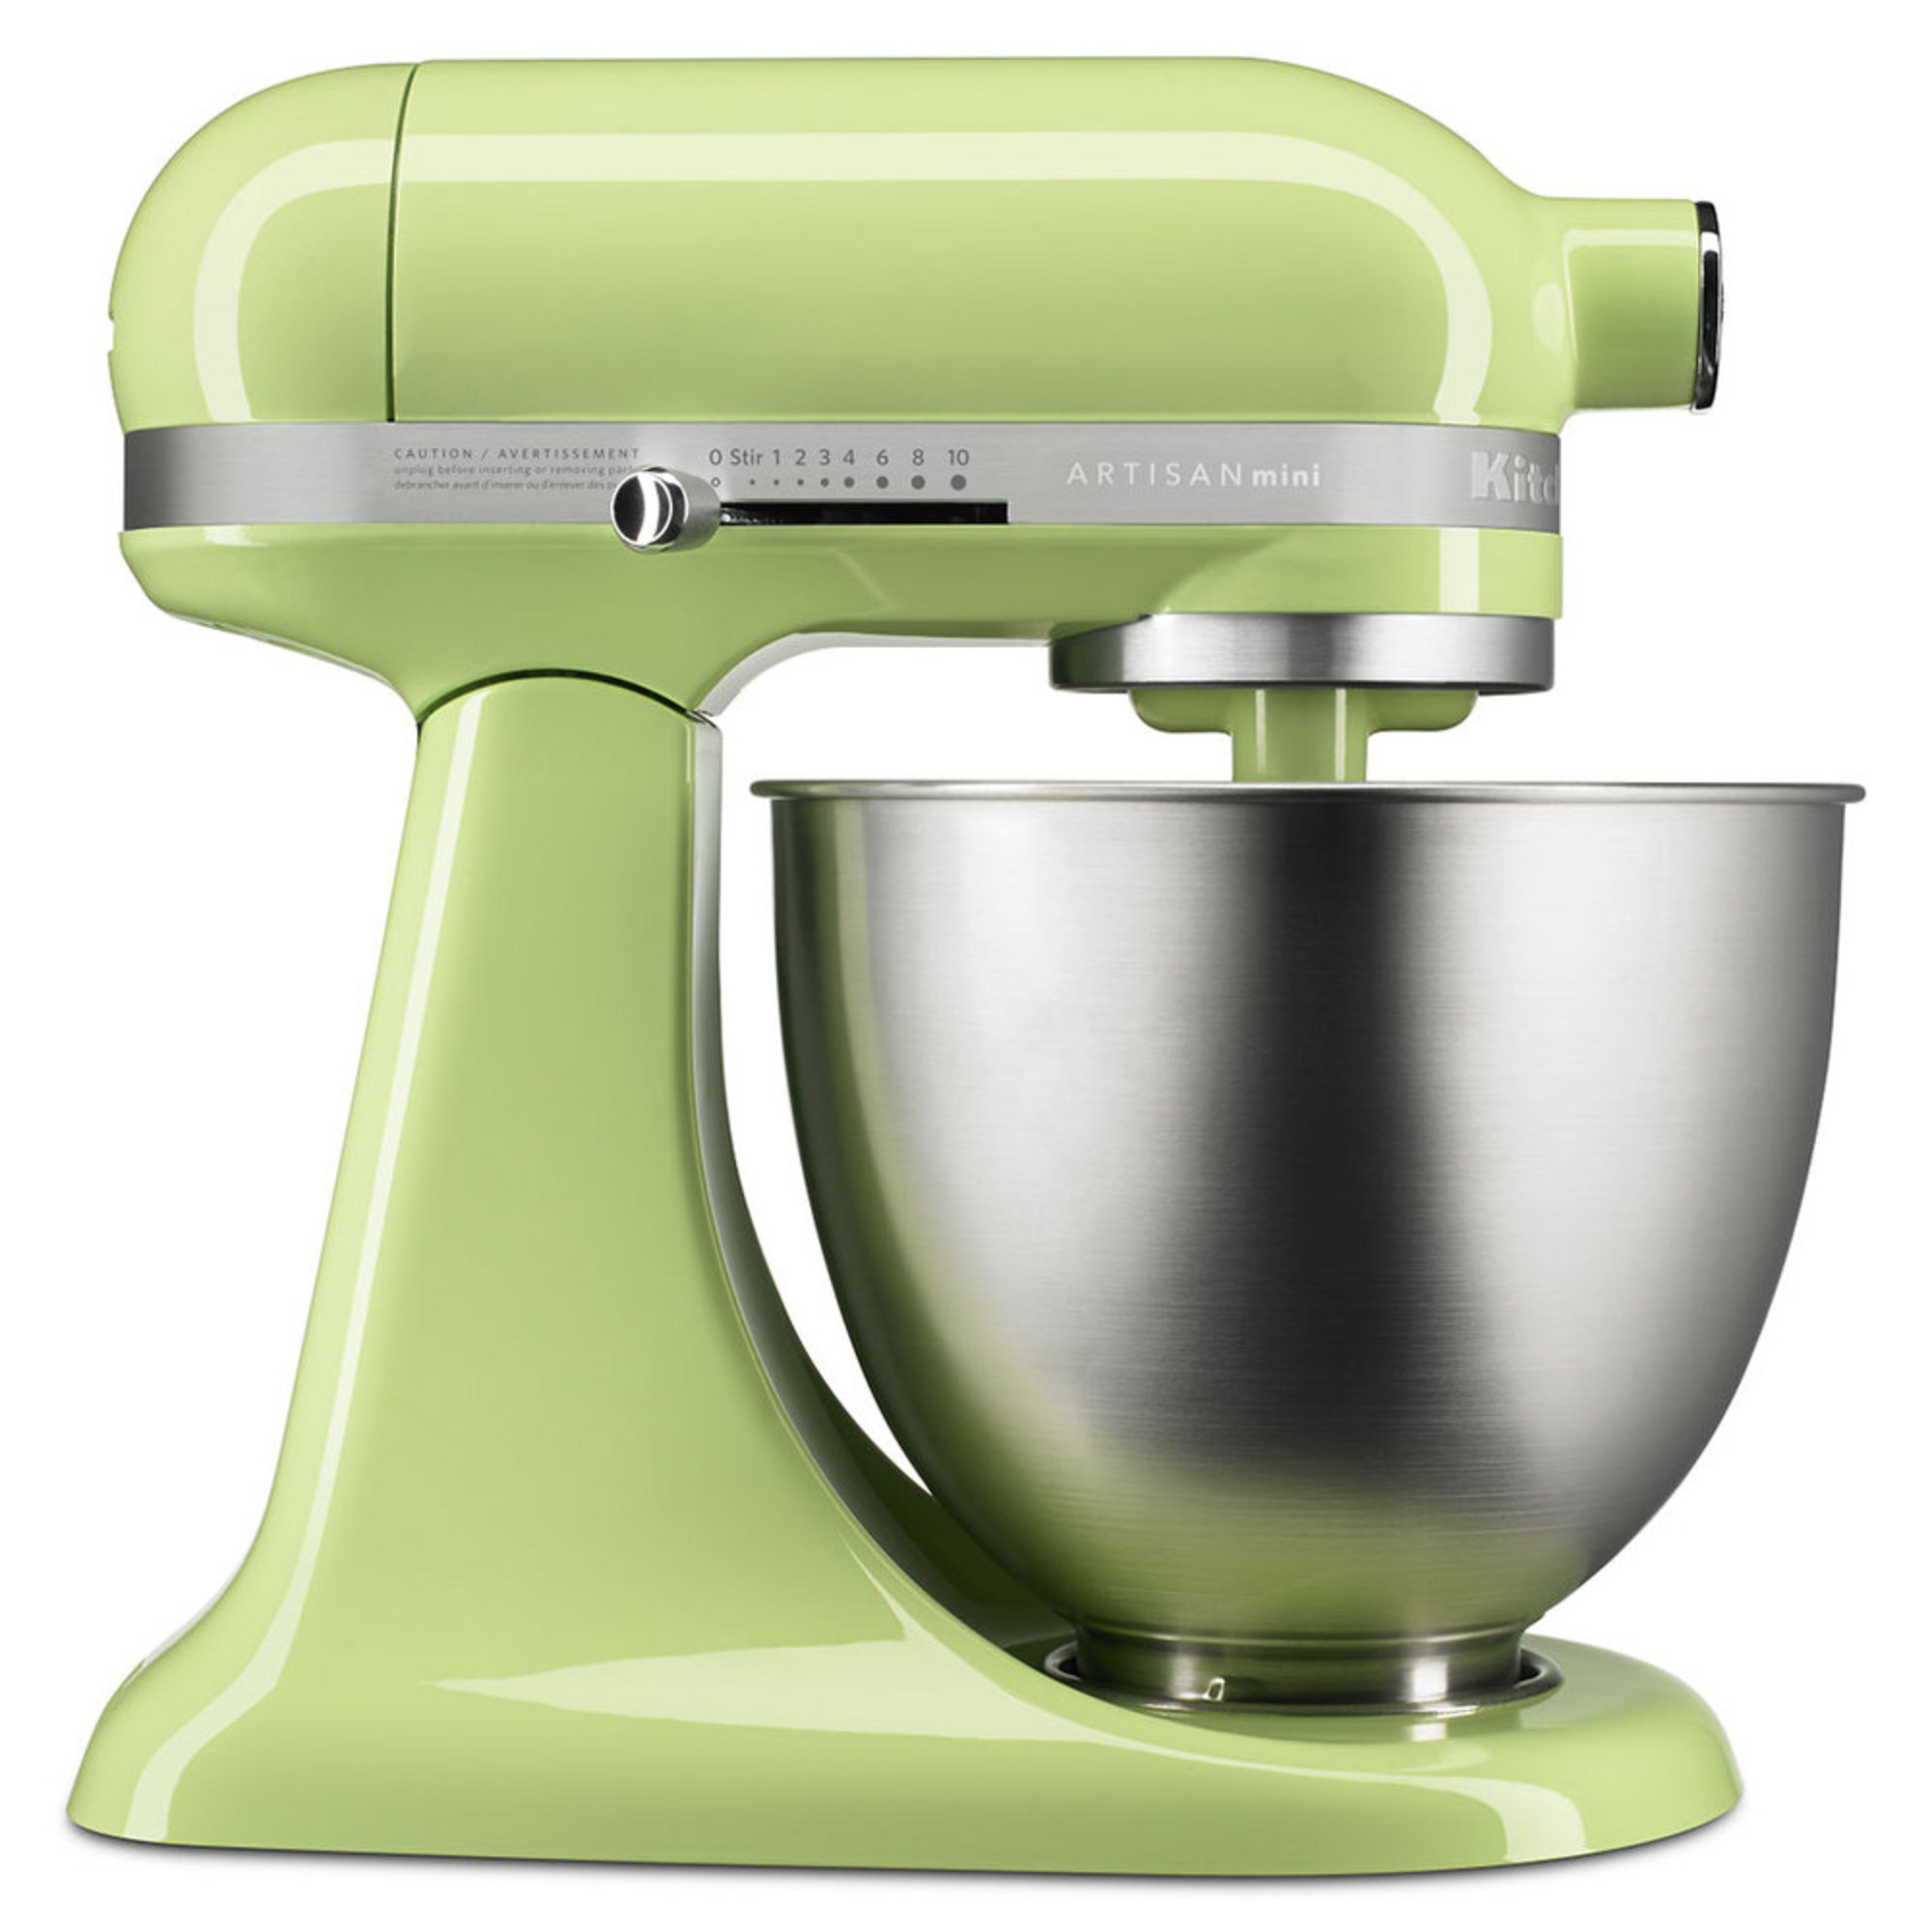 kitchenaid artisan mini 3 5 quart stand mixer honeydew ksm3311xhw stand mixers for the. Black Bedroom Furniture Sets. Home Design Ideas